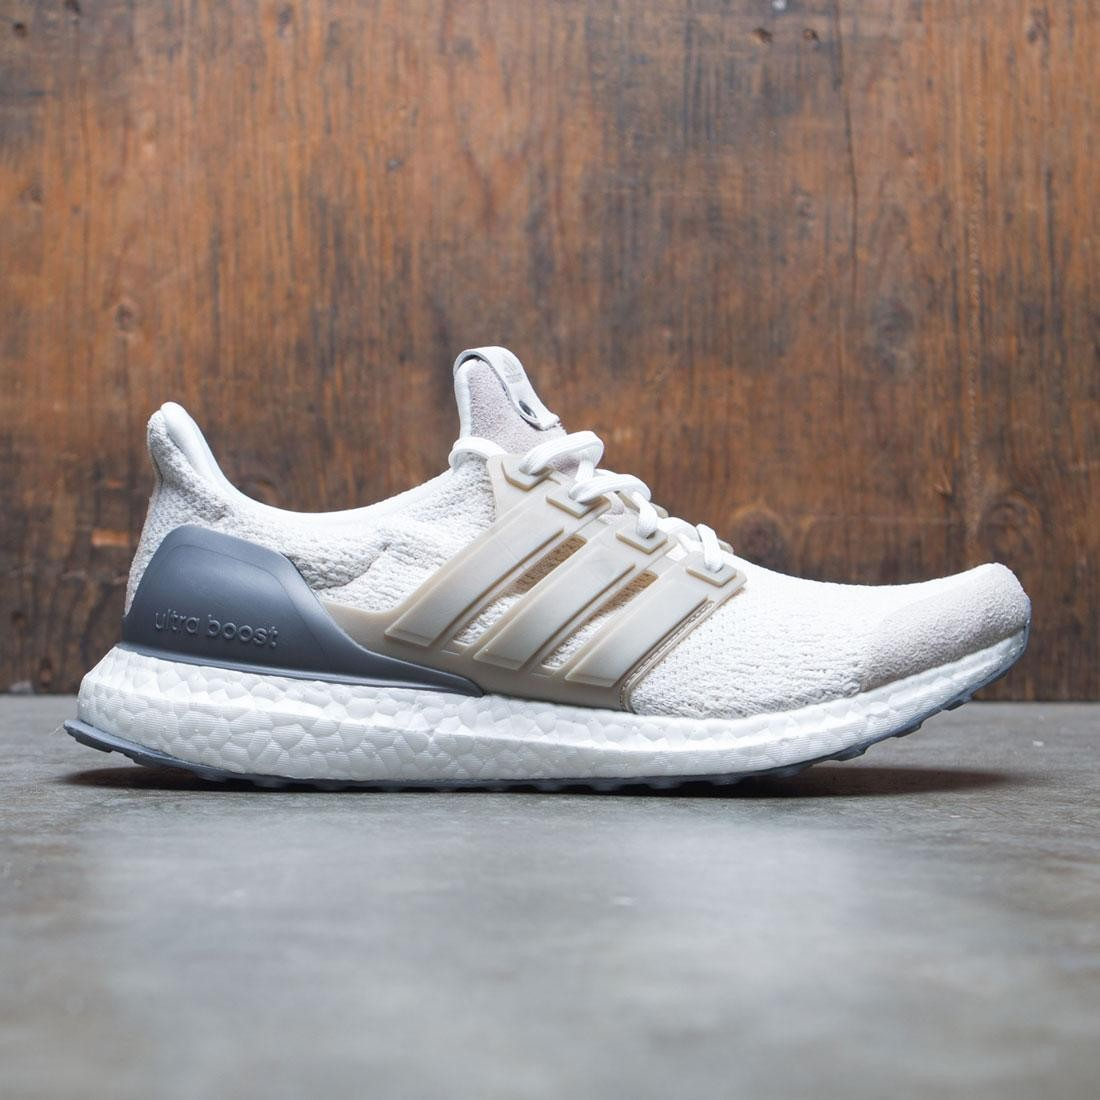 446b0cc90ff18 Adidas Consortium Men UltraBOOST Lux white vintage white chocolate brown